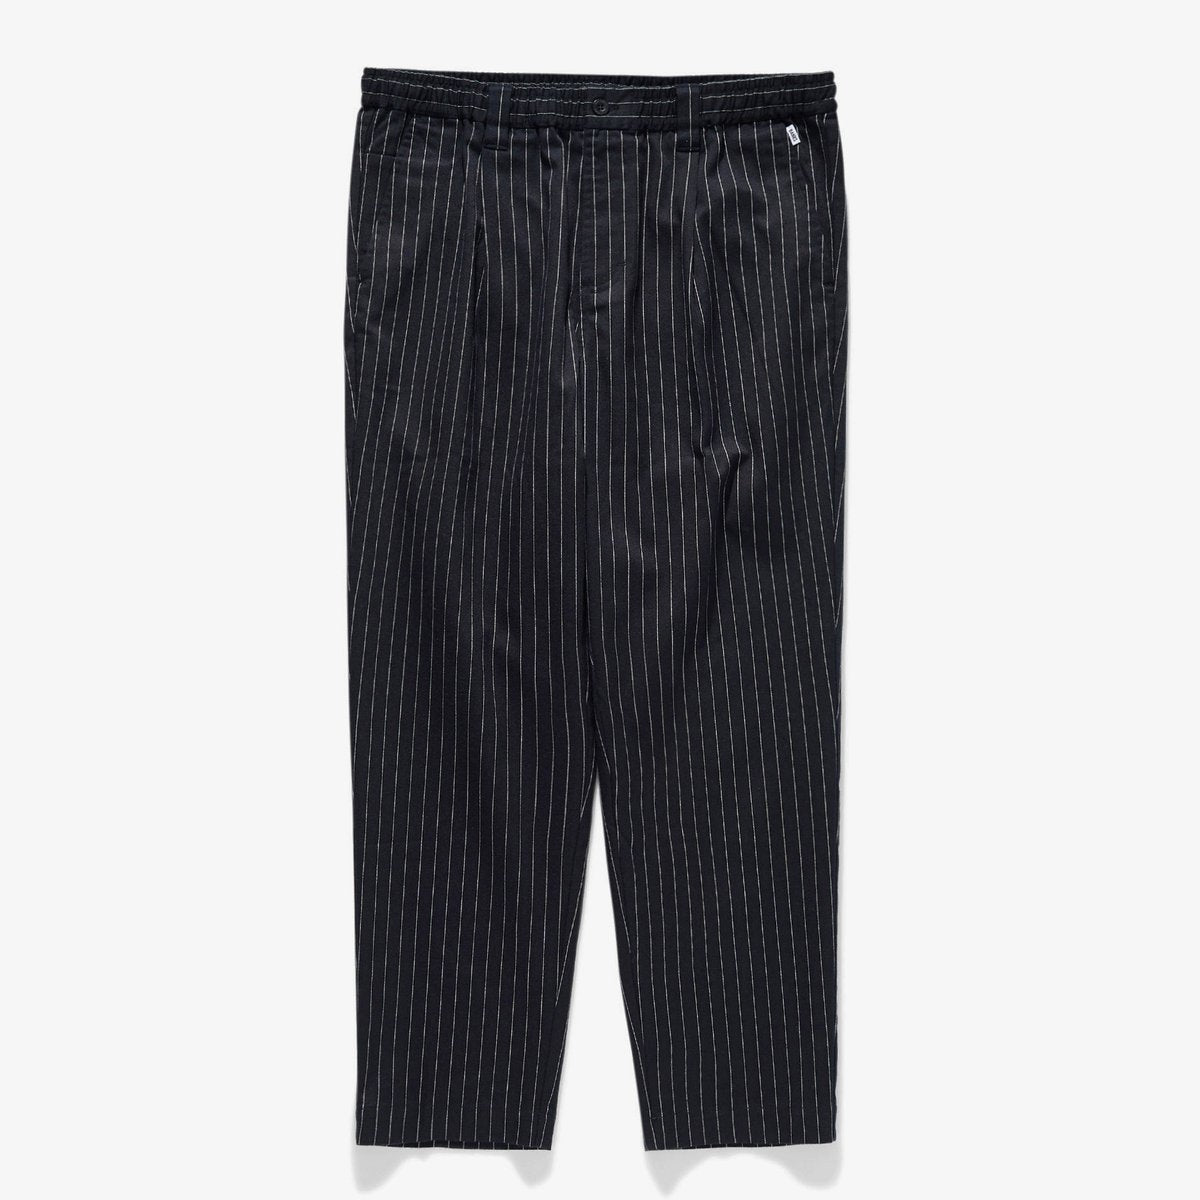 BANKS JOURNAL SUPPLY PINSTRIPE CROPPED PANTS - 8586